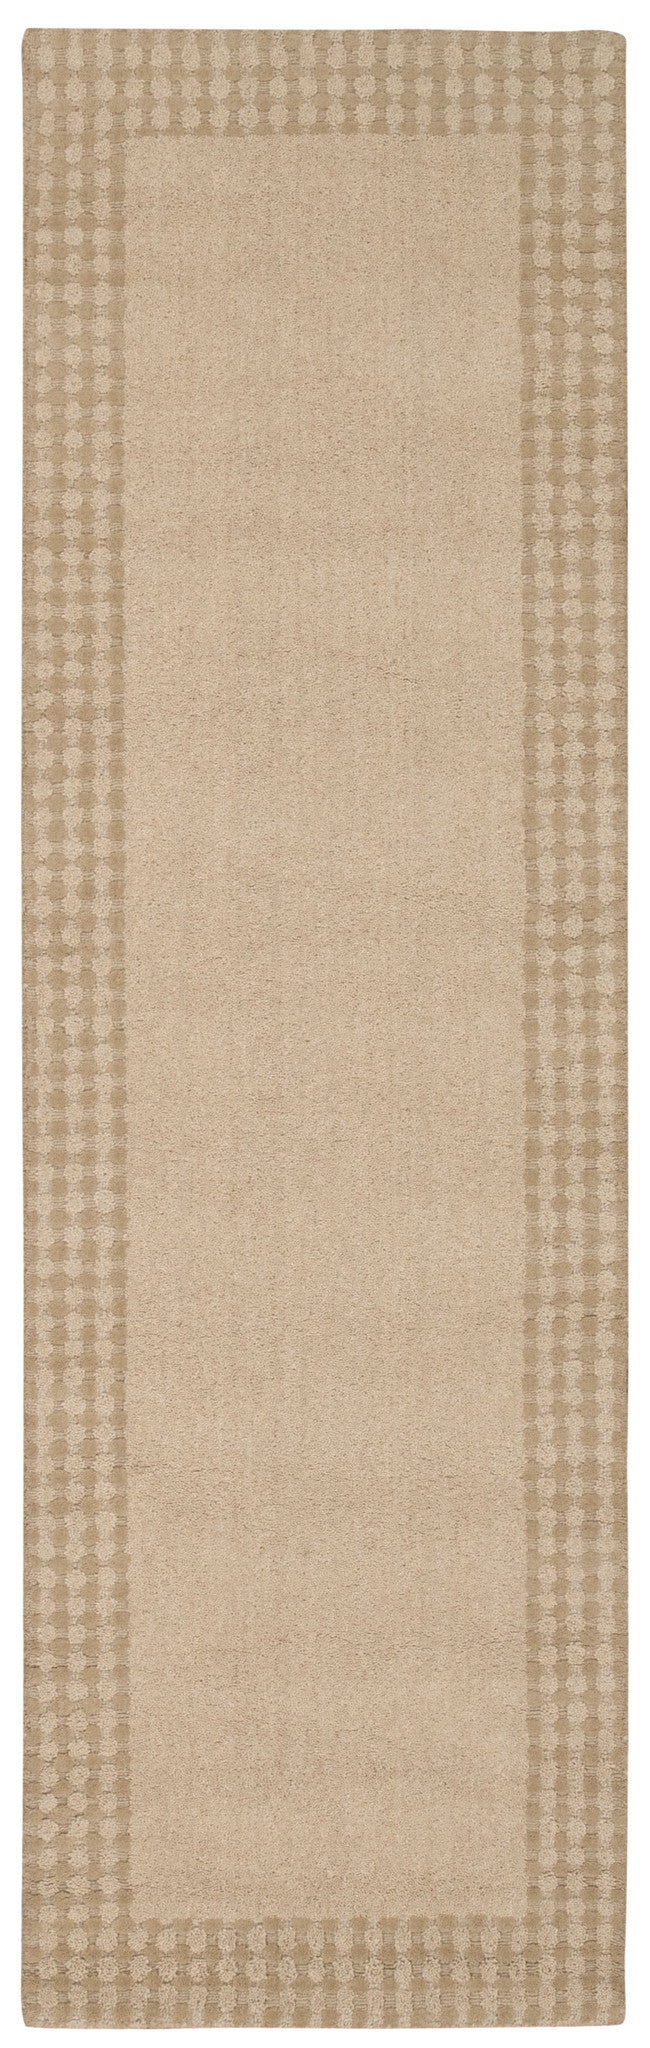 Kathy Ireland Cottage Grove Bisque Area Rug By Nourison KI700 BISQU